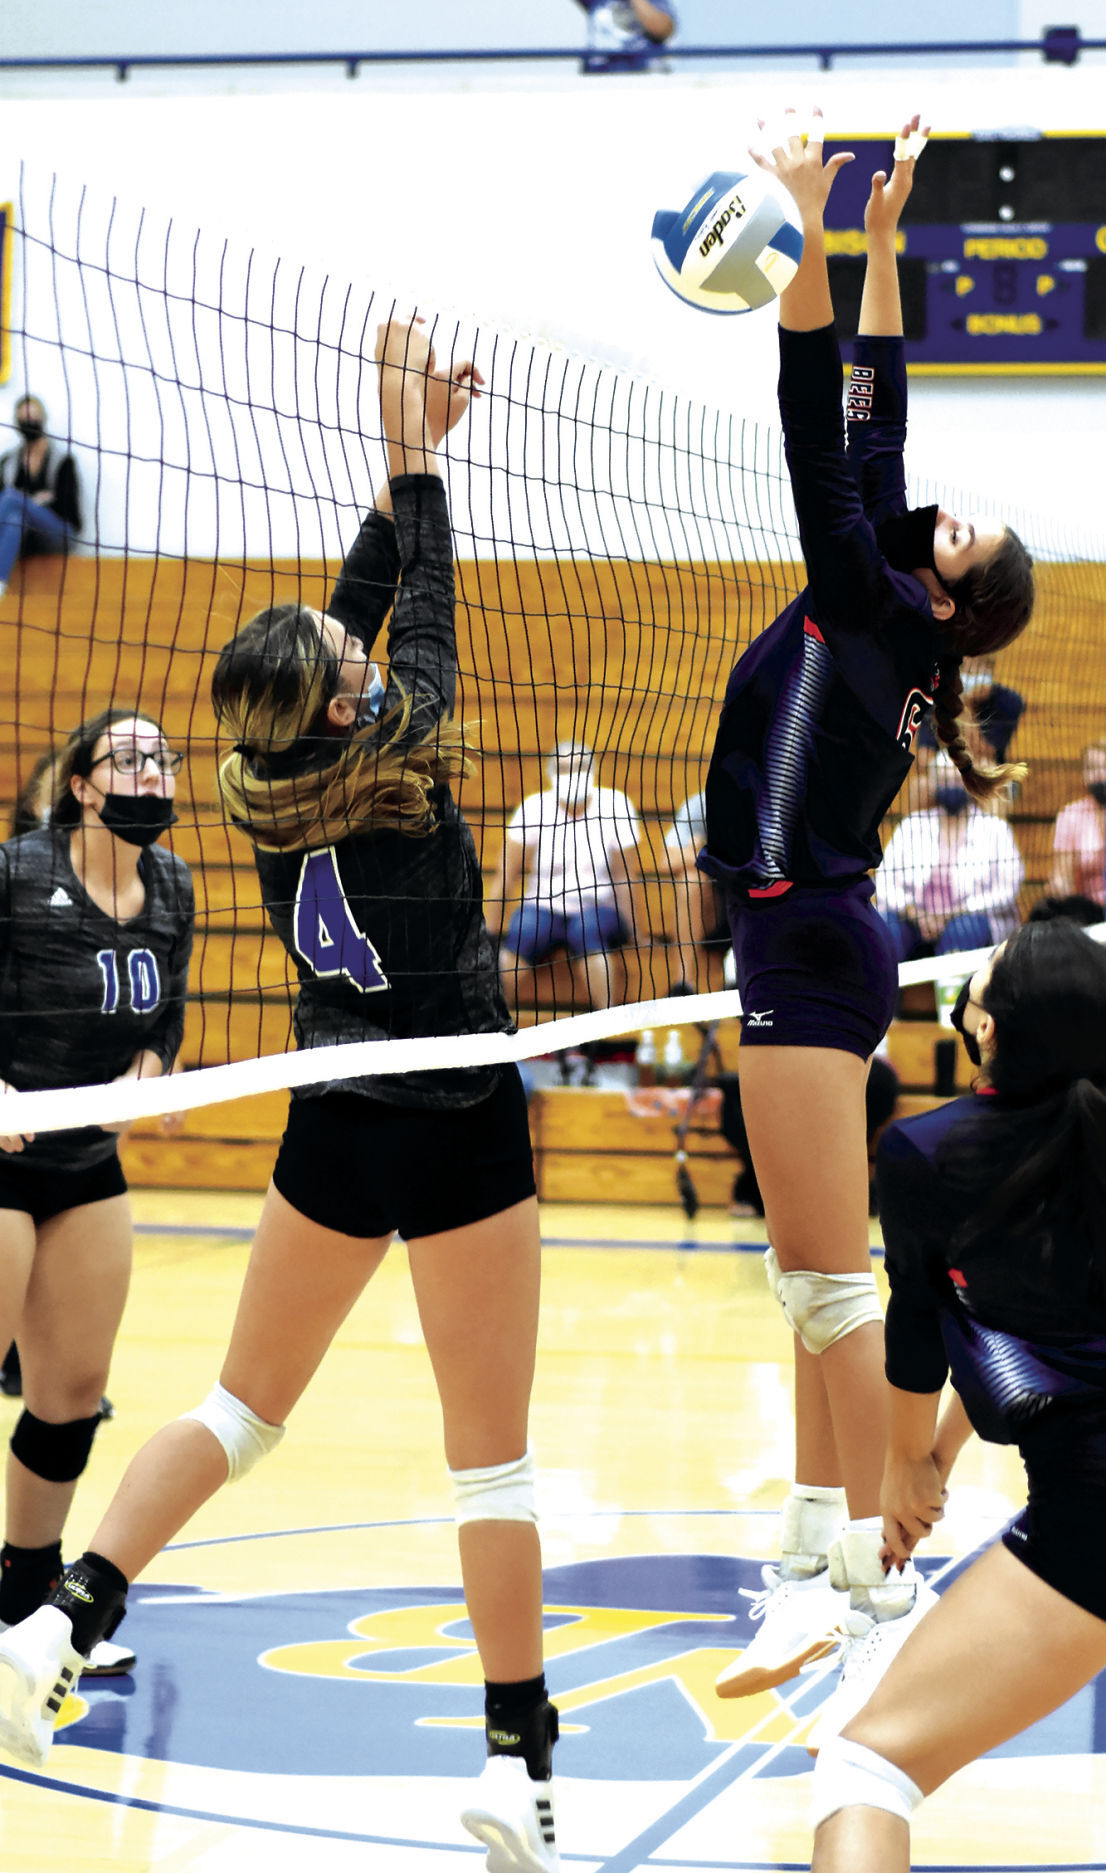 9 16 Sports Volley 2 Bees 4 and 6 at net.jpg